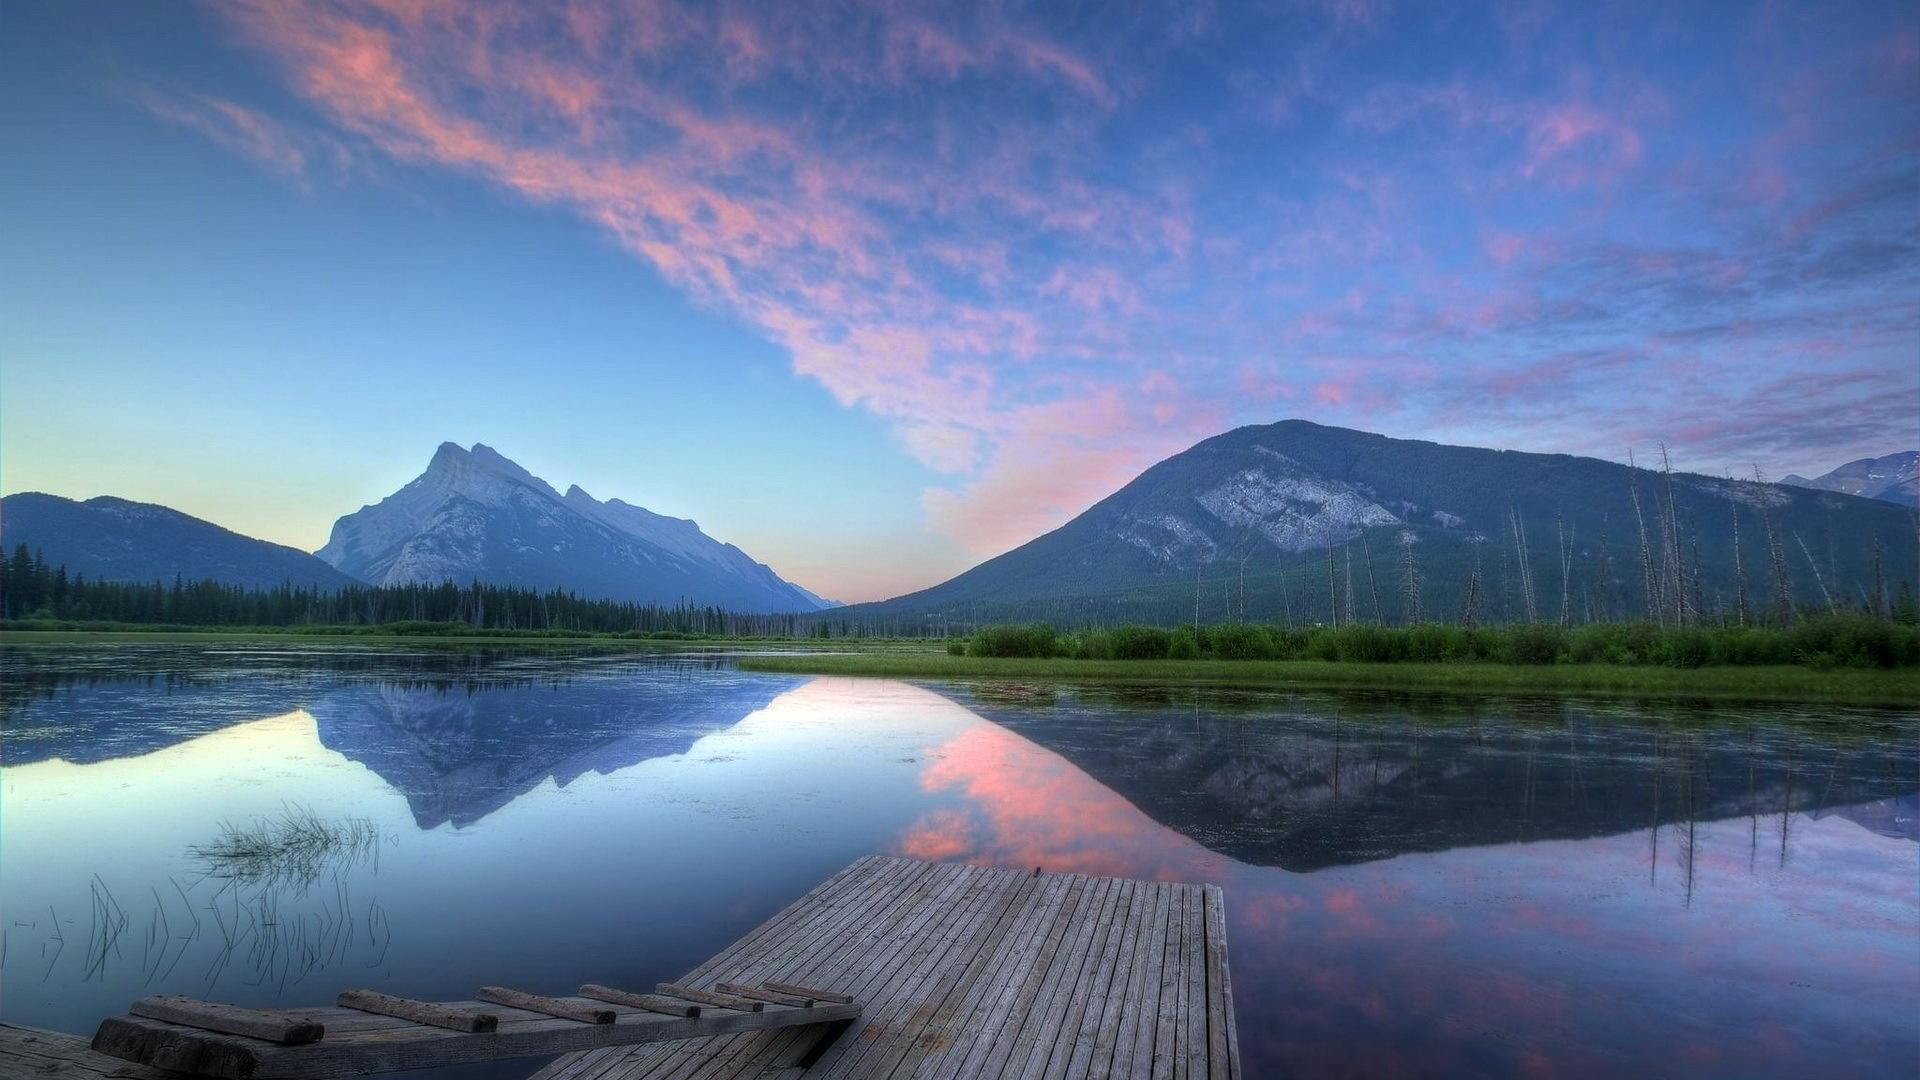 1920x1080 Colorful Vermillion Lake At Sunrise Hd Wallpapers 1080p Scenery Wallpaper Vermillion Lakes Natural Scenery